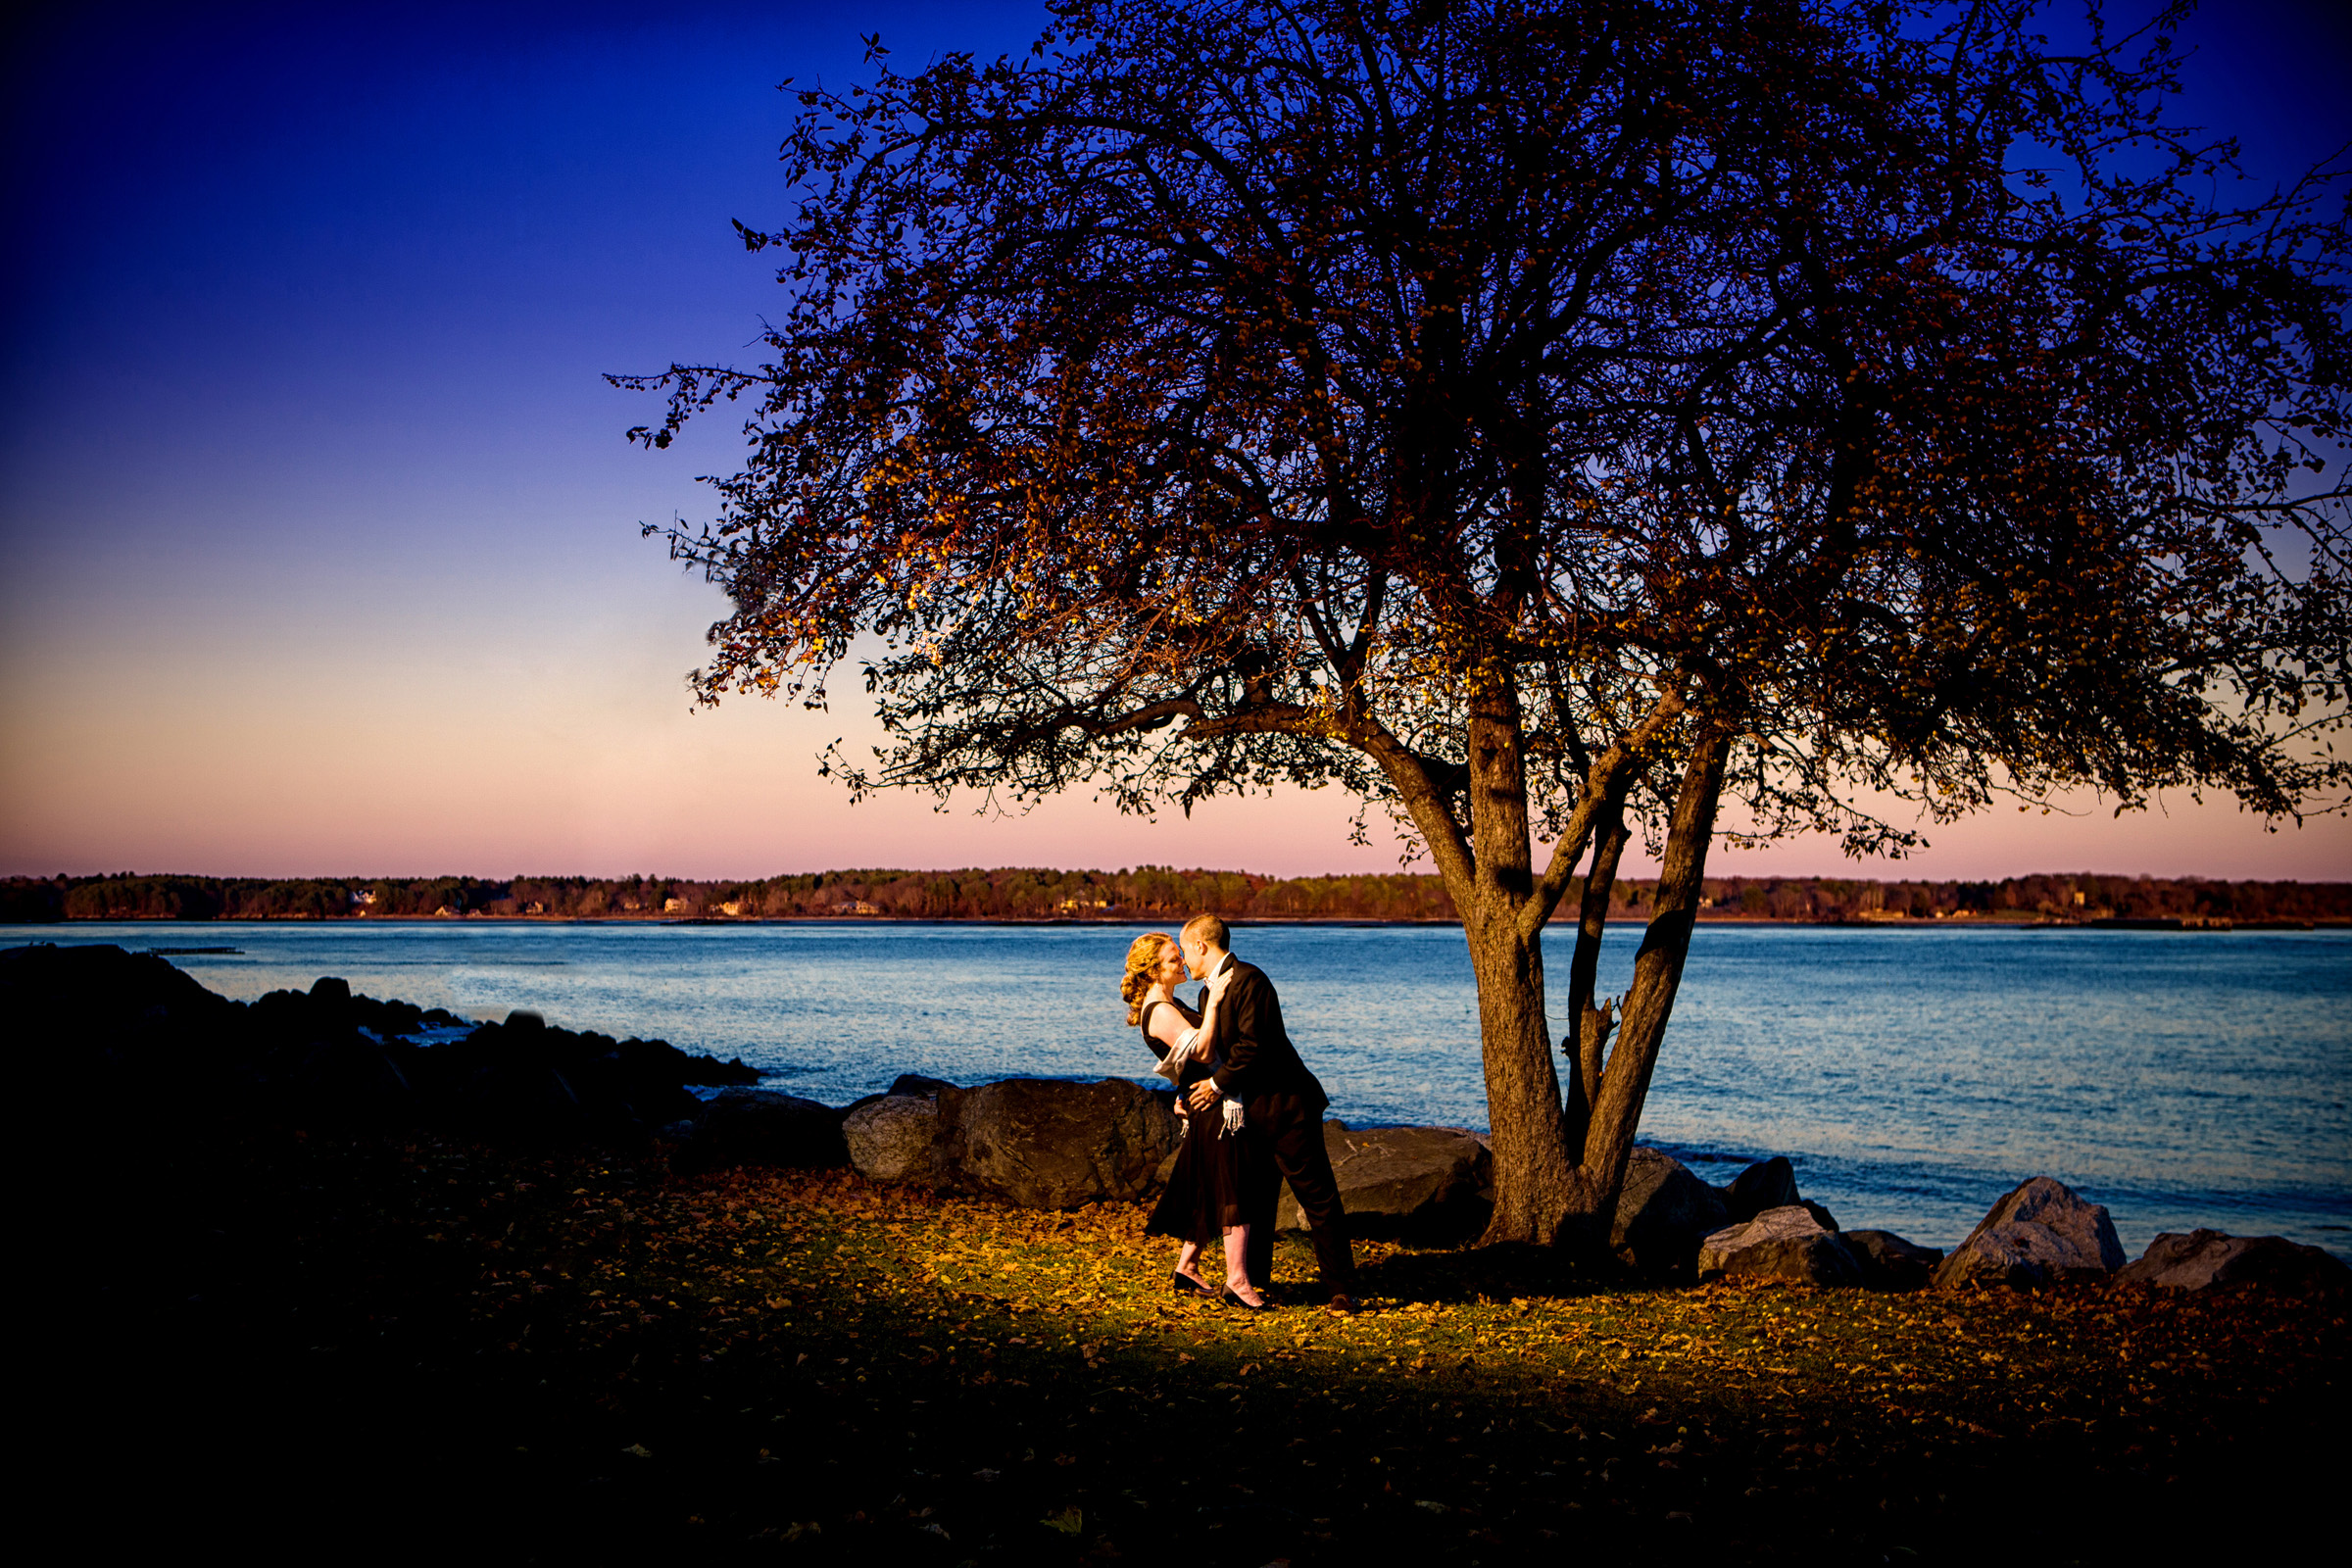 engagement picture at great island commons in new castle, new hampshire